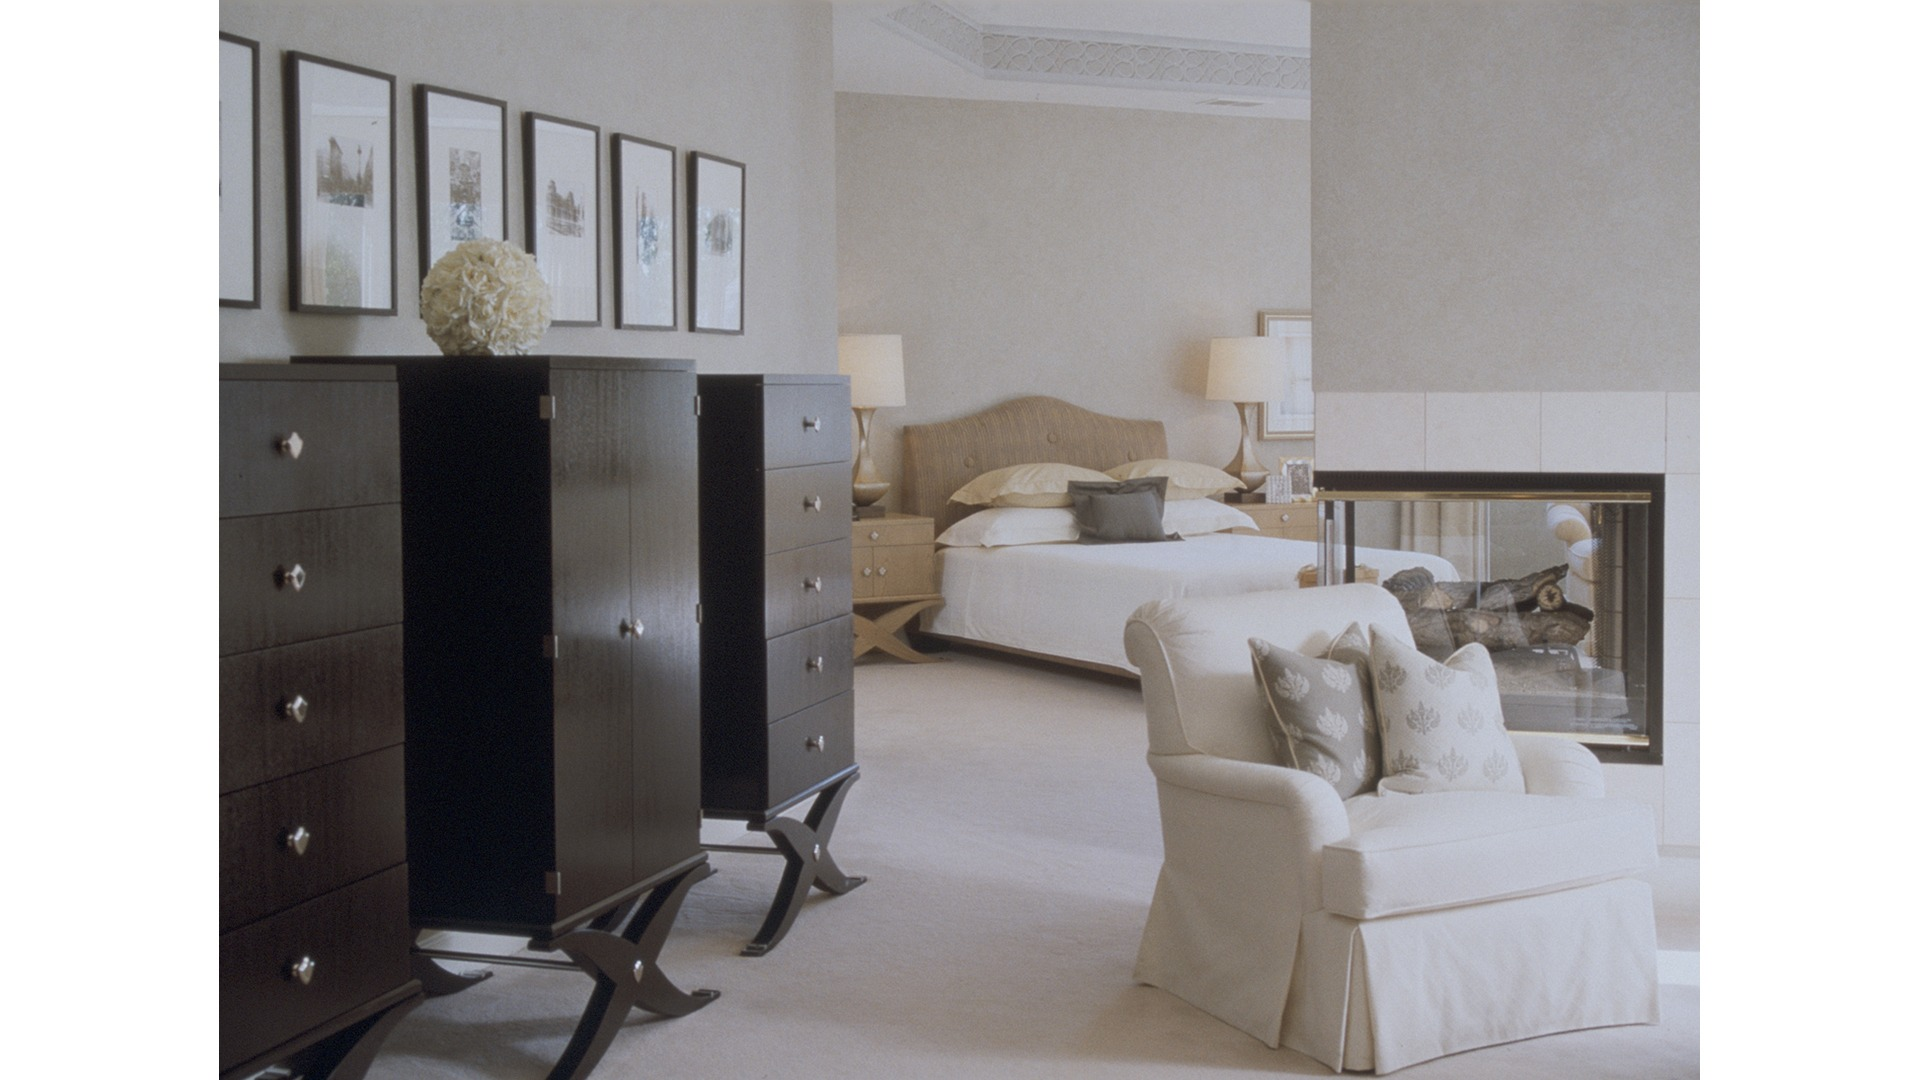 The Owner's Bedroom in the Woodley model. Some optional features shown.